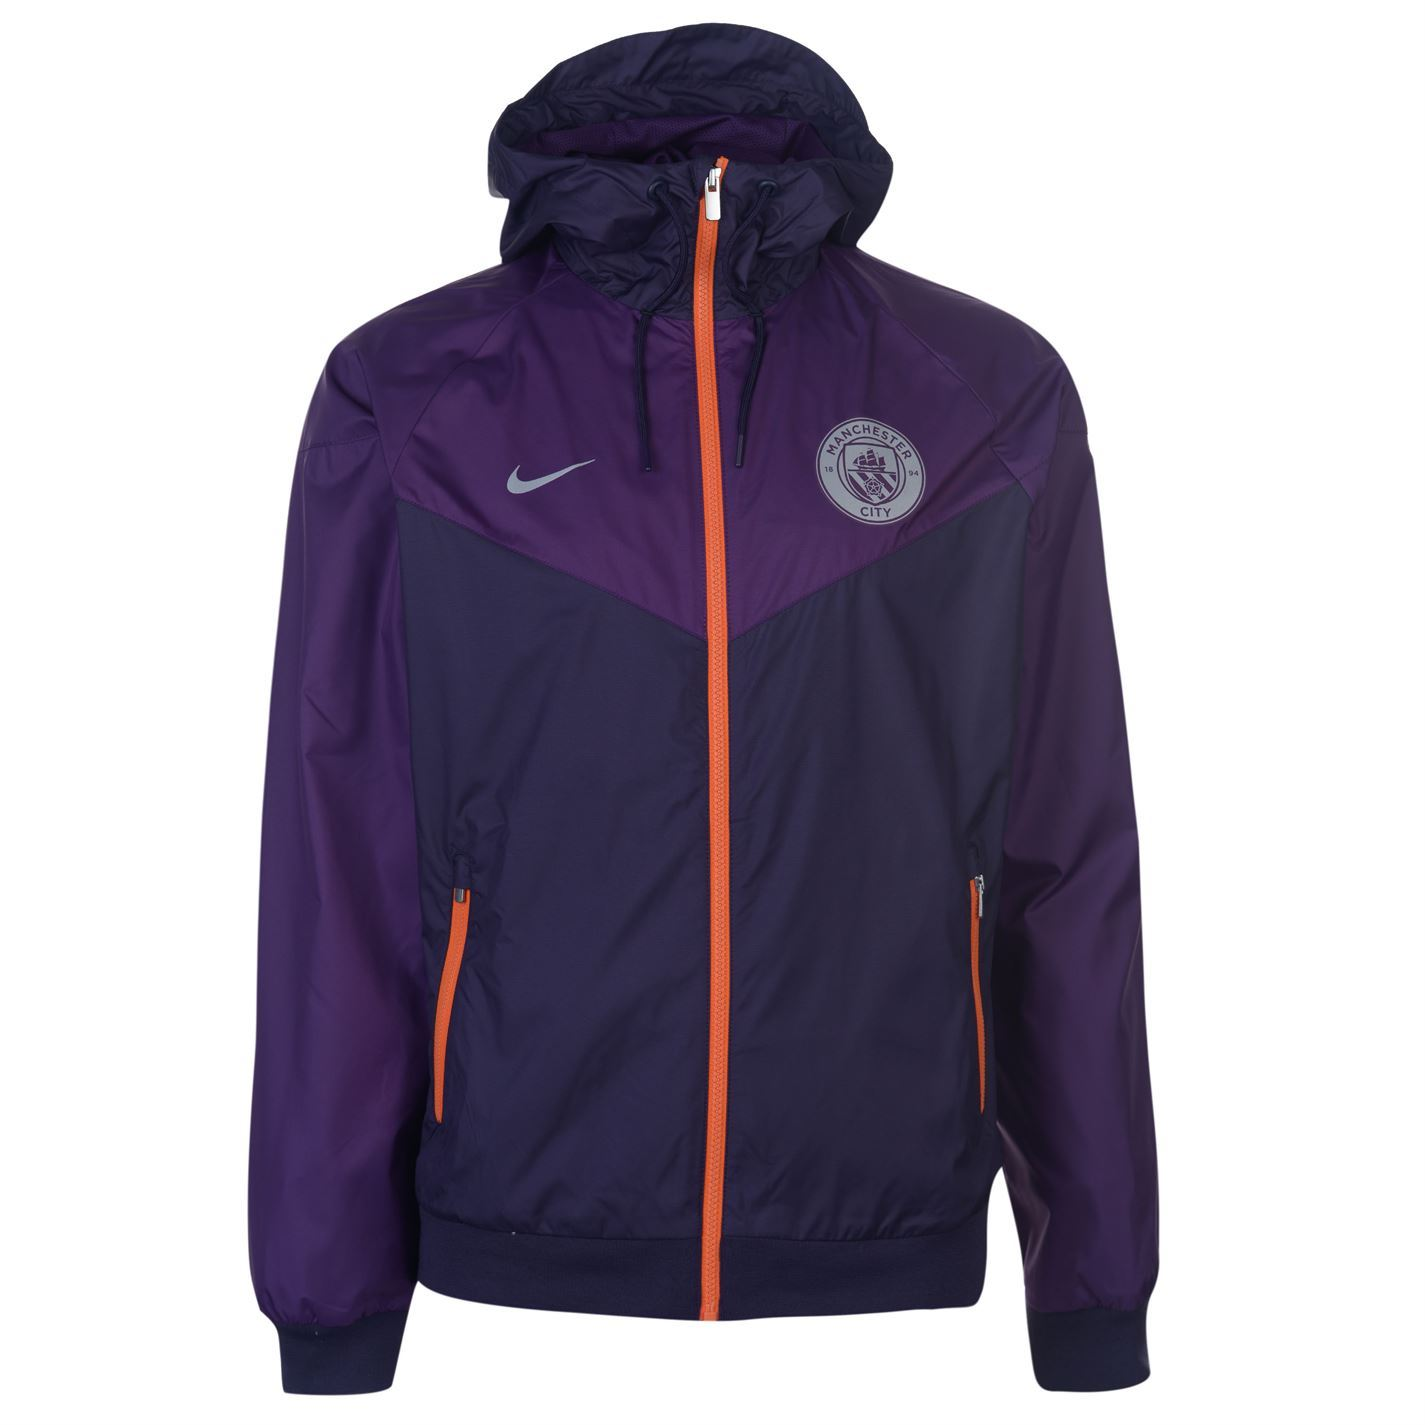 f77cb4322 Nike Manchester City Wind Runner Jacket Mens Purple Football Soccer Track  Top